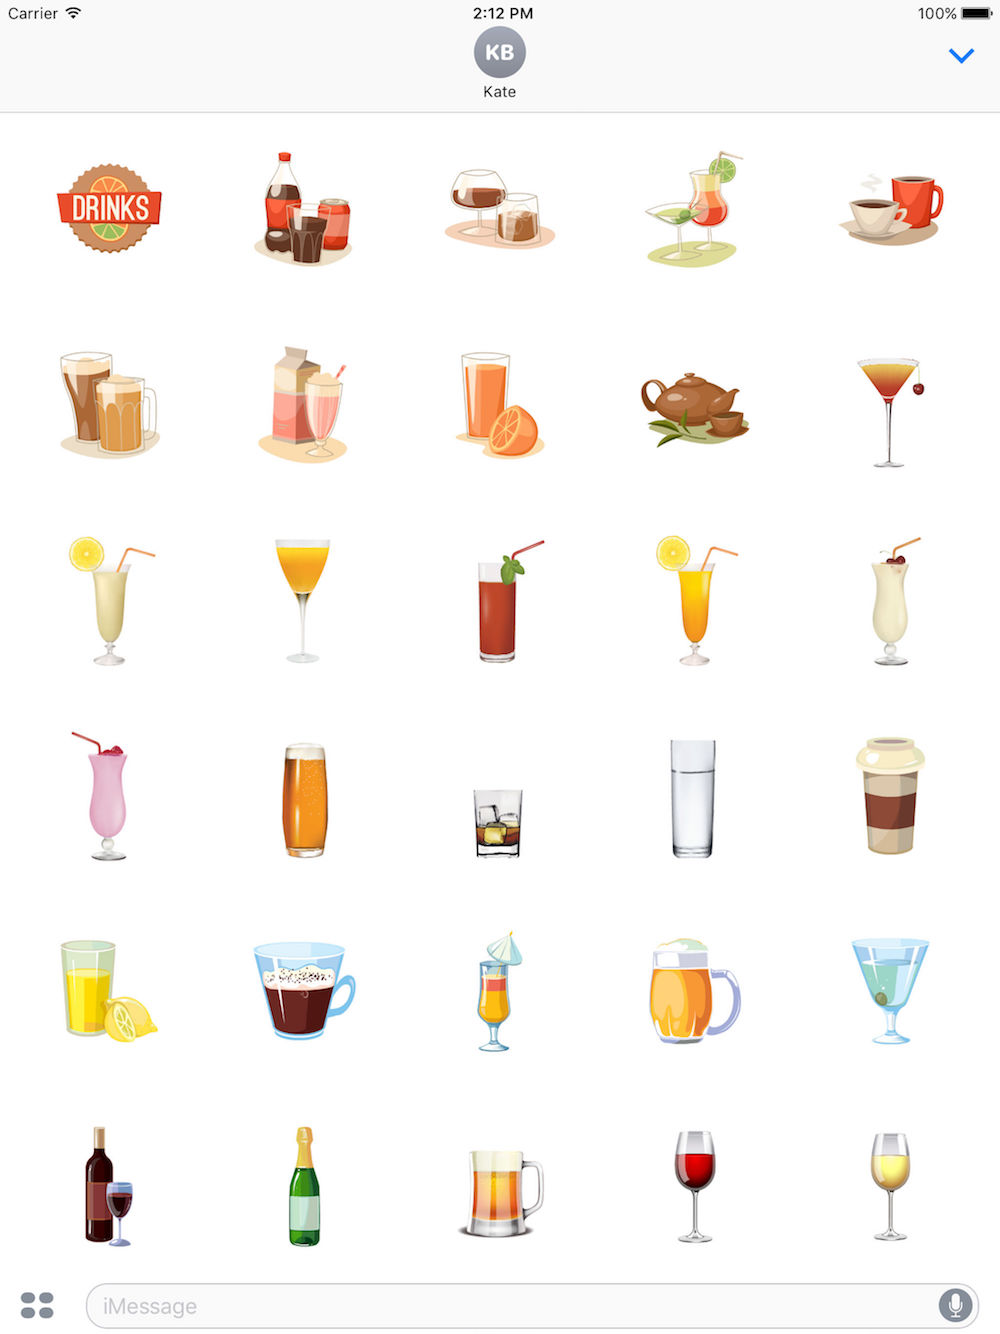 drink free iOS sticker messages pack